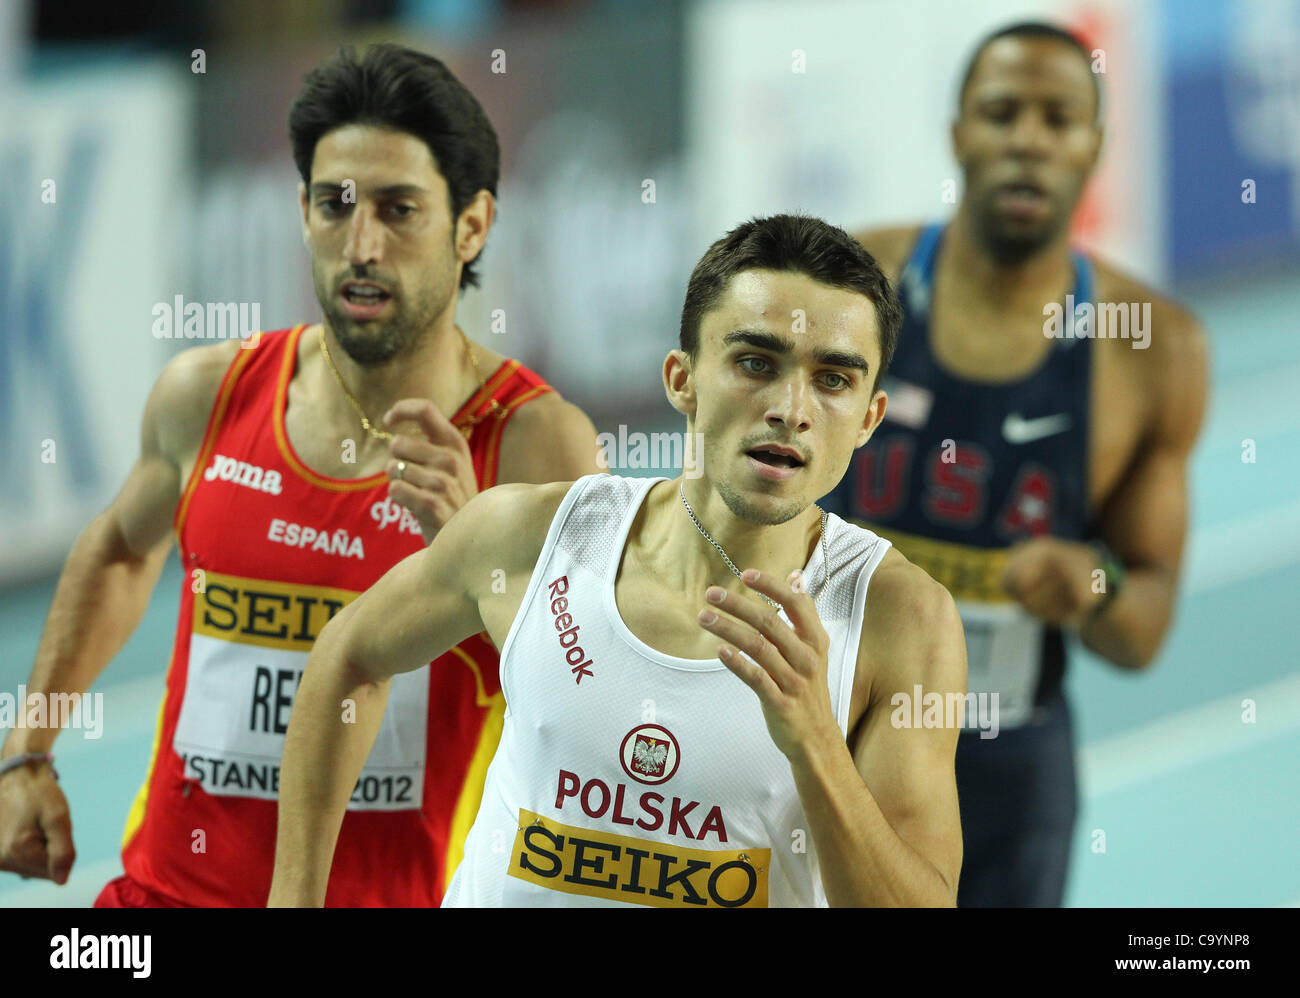 ISTANBUL, TURKEY: Friday 9 March 2012, Adam Kszczot (POL) of Poland in the mens 800m qualification during the morning - Stock Image